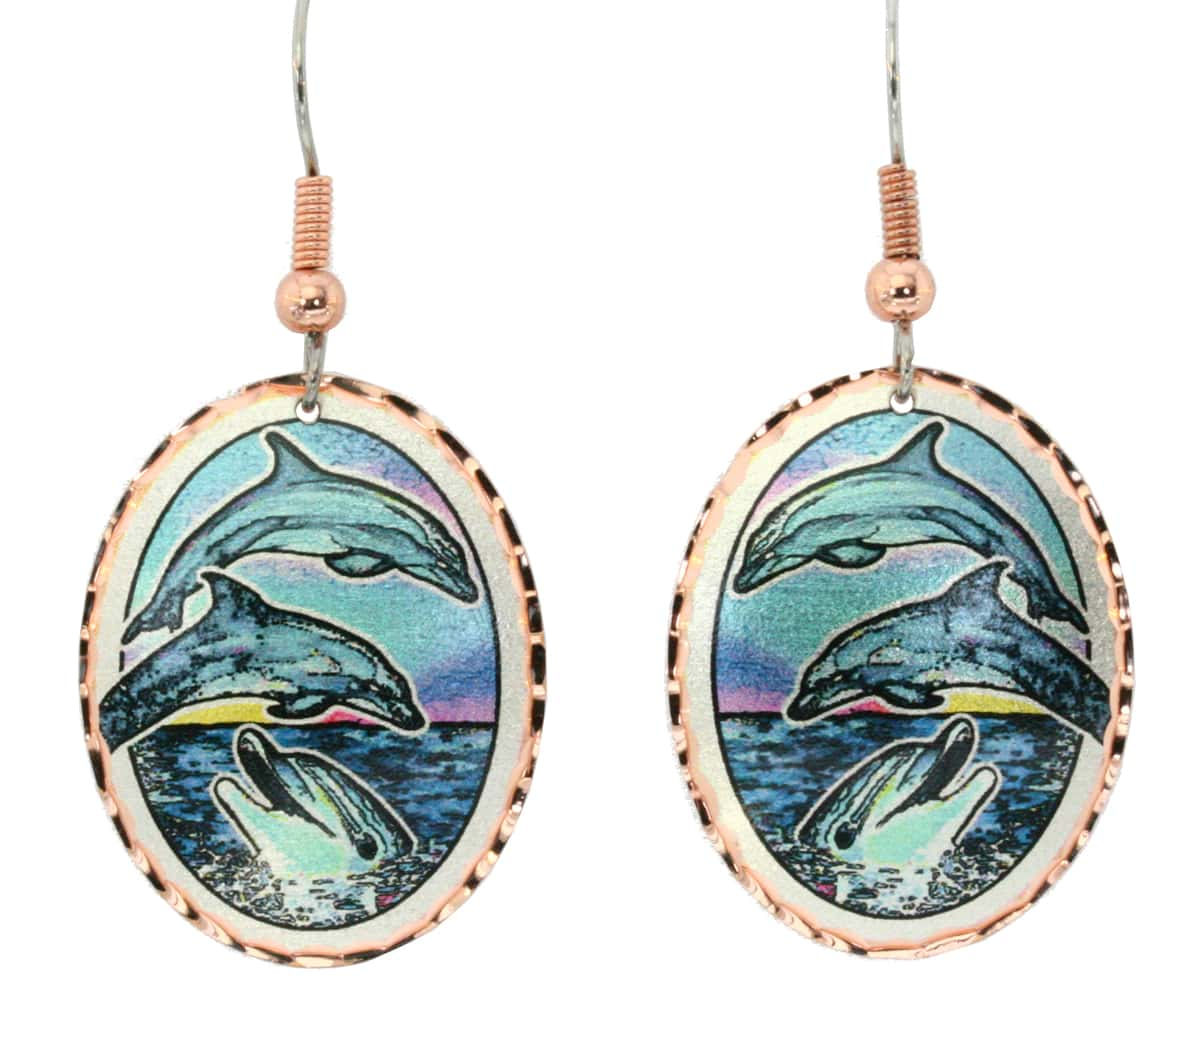 Jumping dolphin earrings created in colorful ocean scene